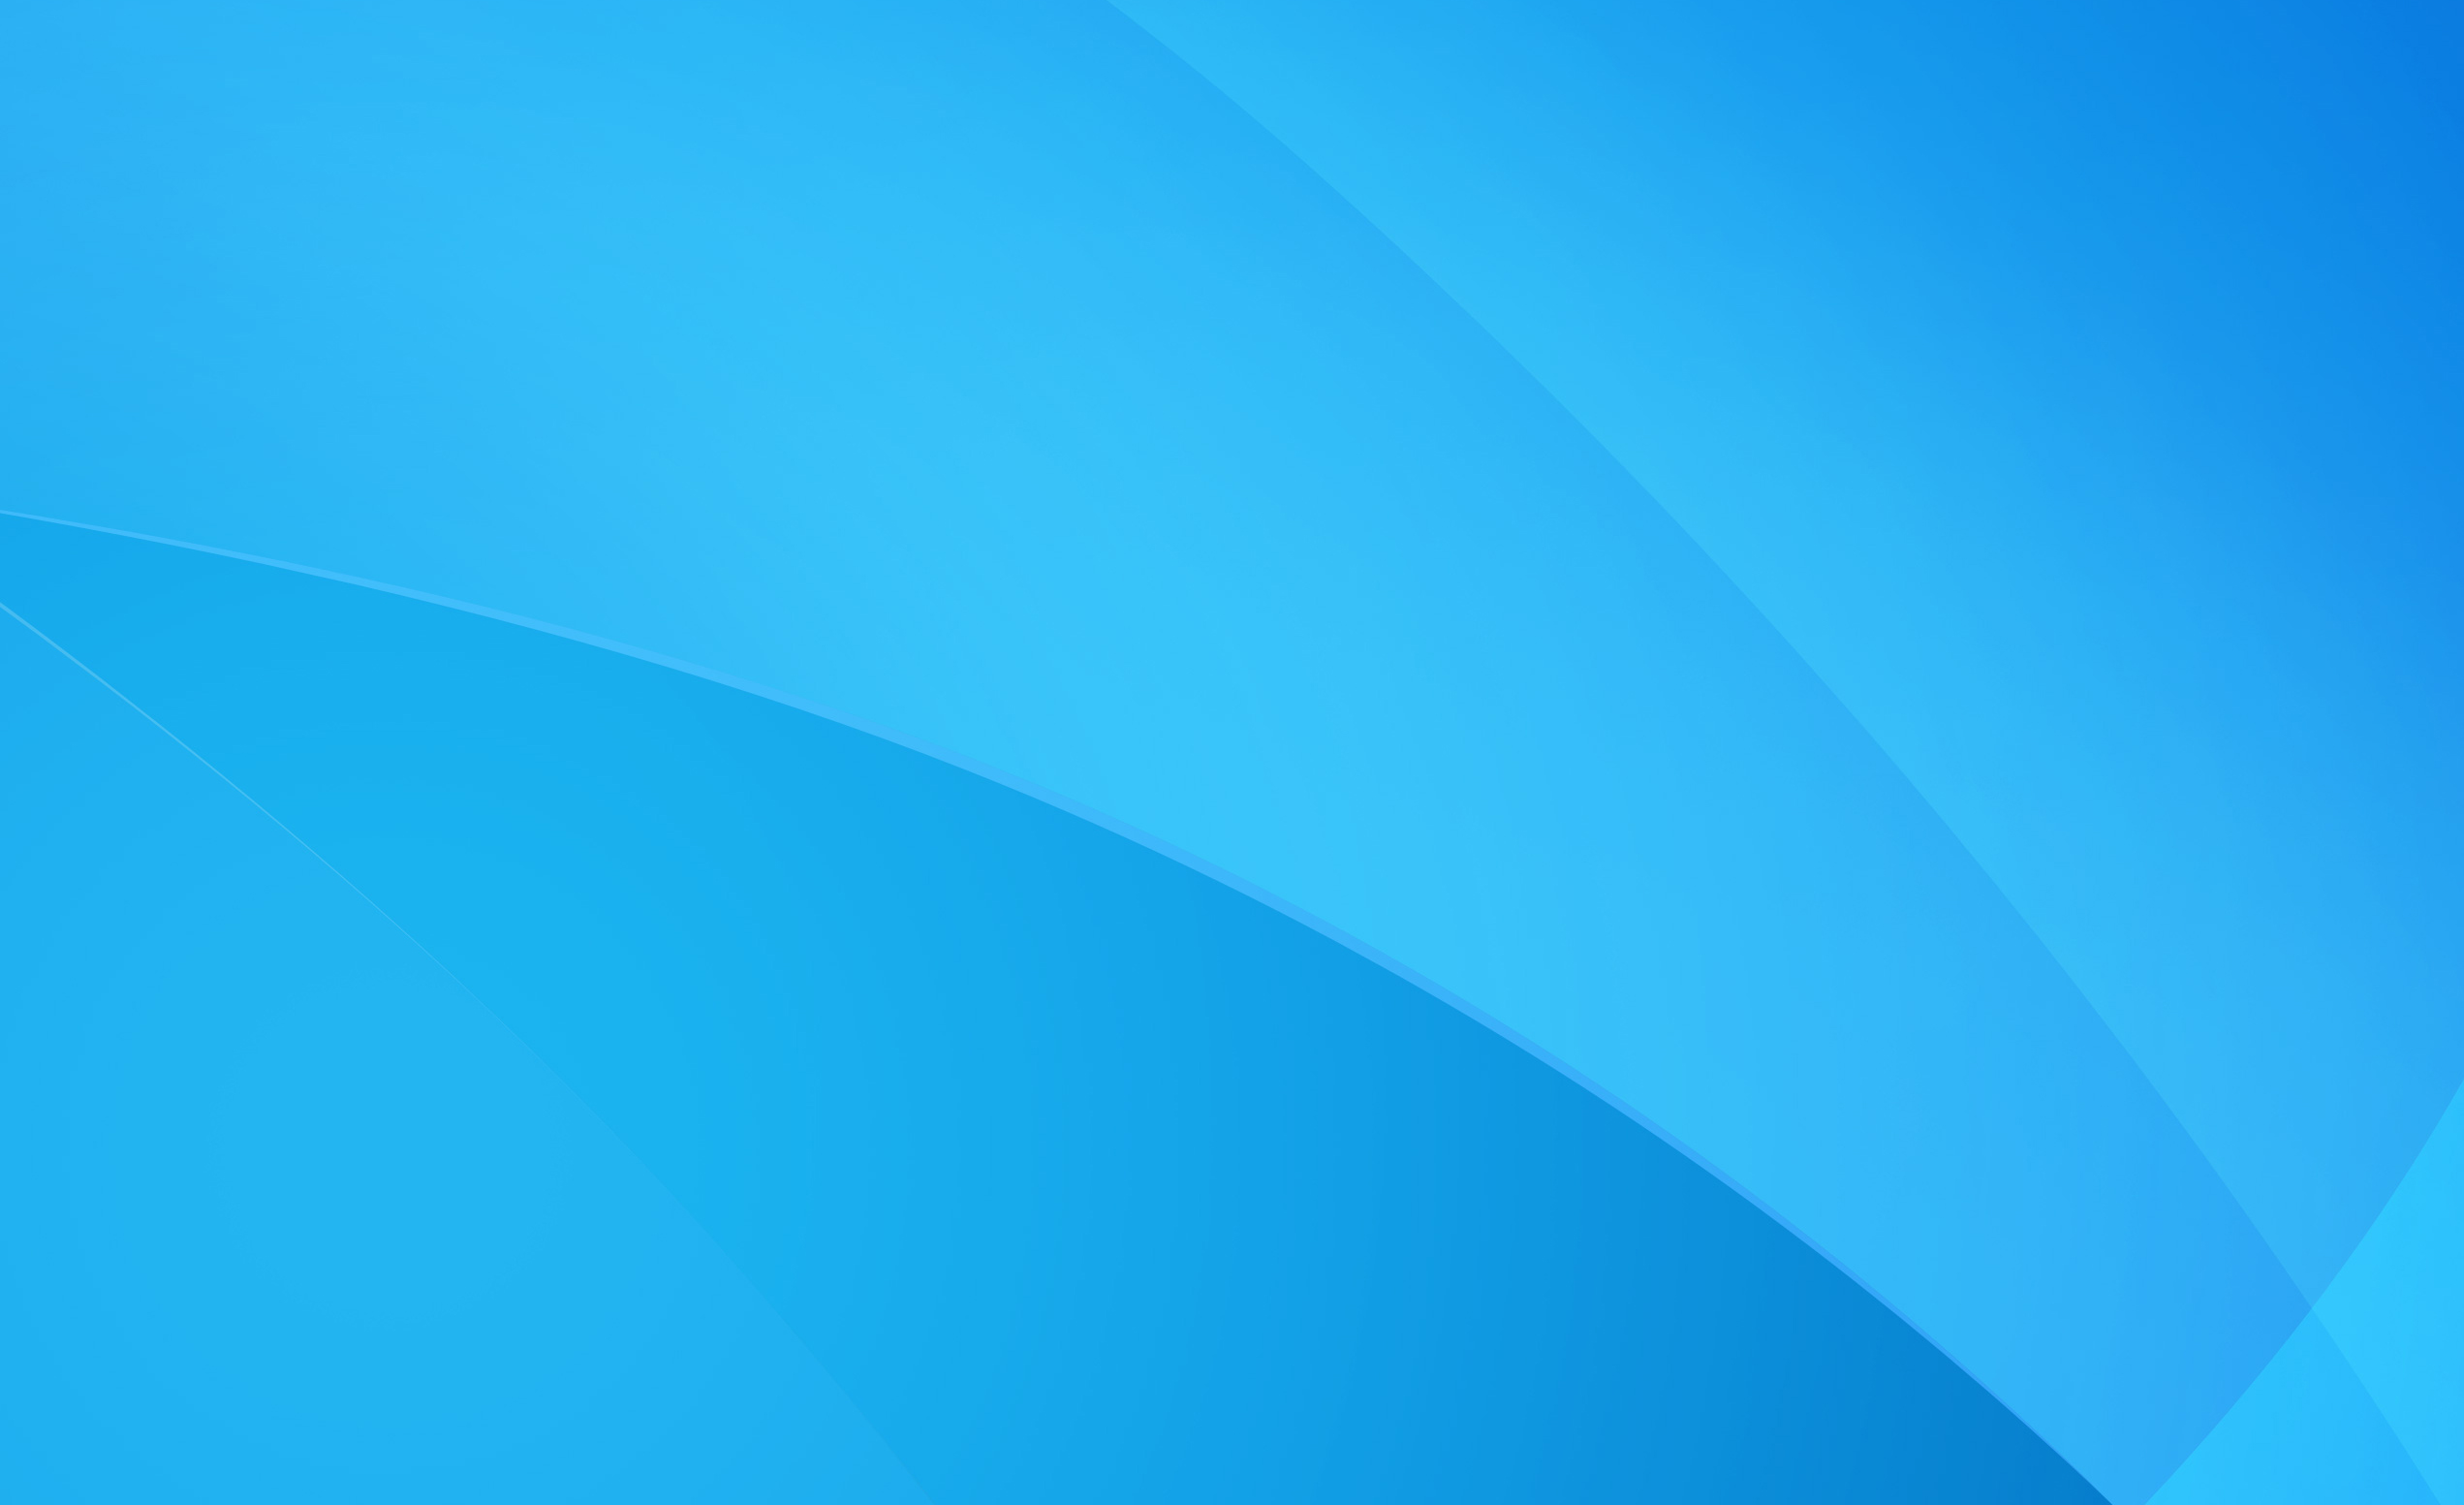 ... 26, 2013 at 2543 × 1553 in blue-abstract-background.jpg HTML code